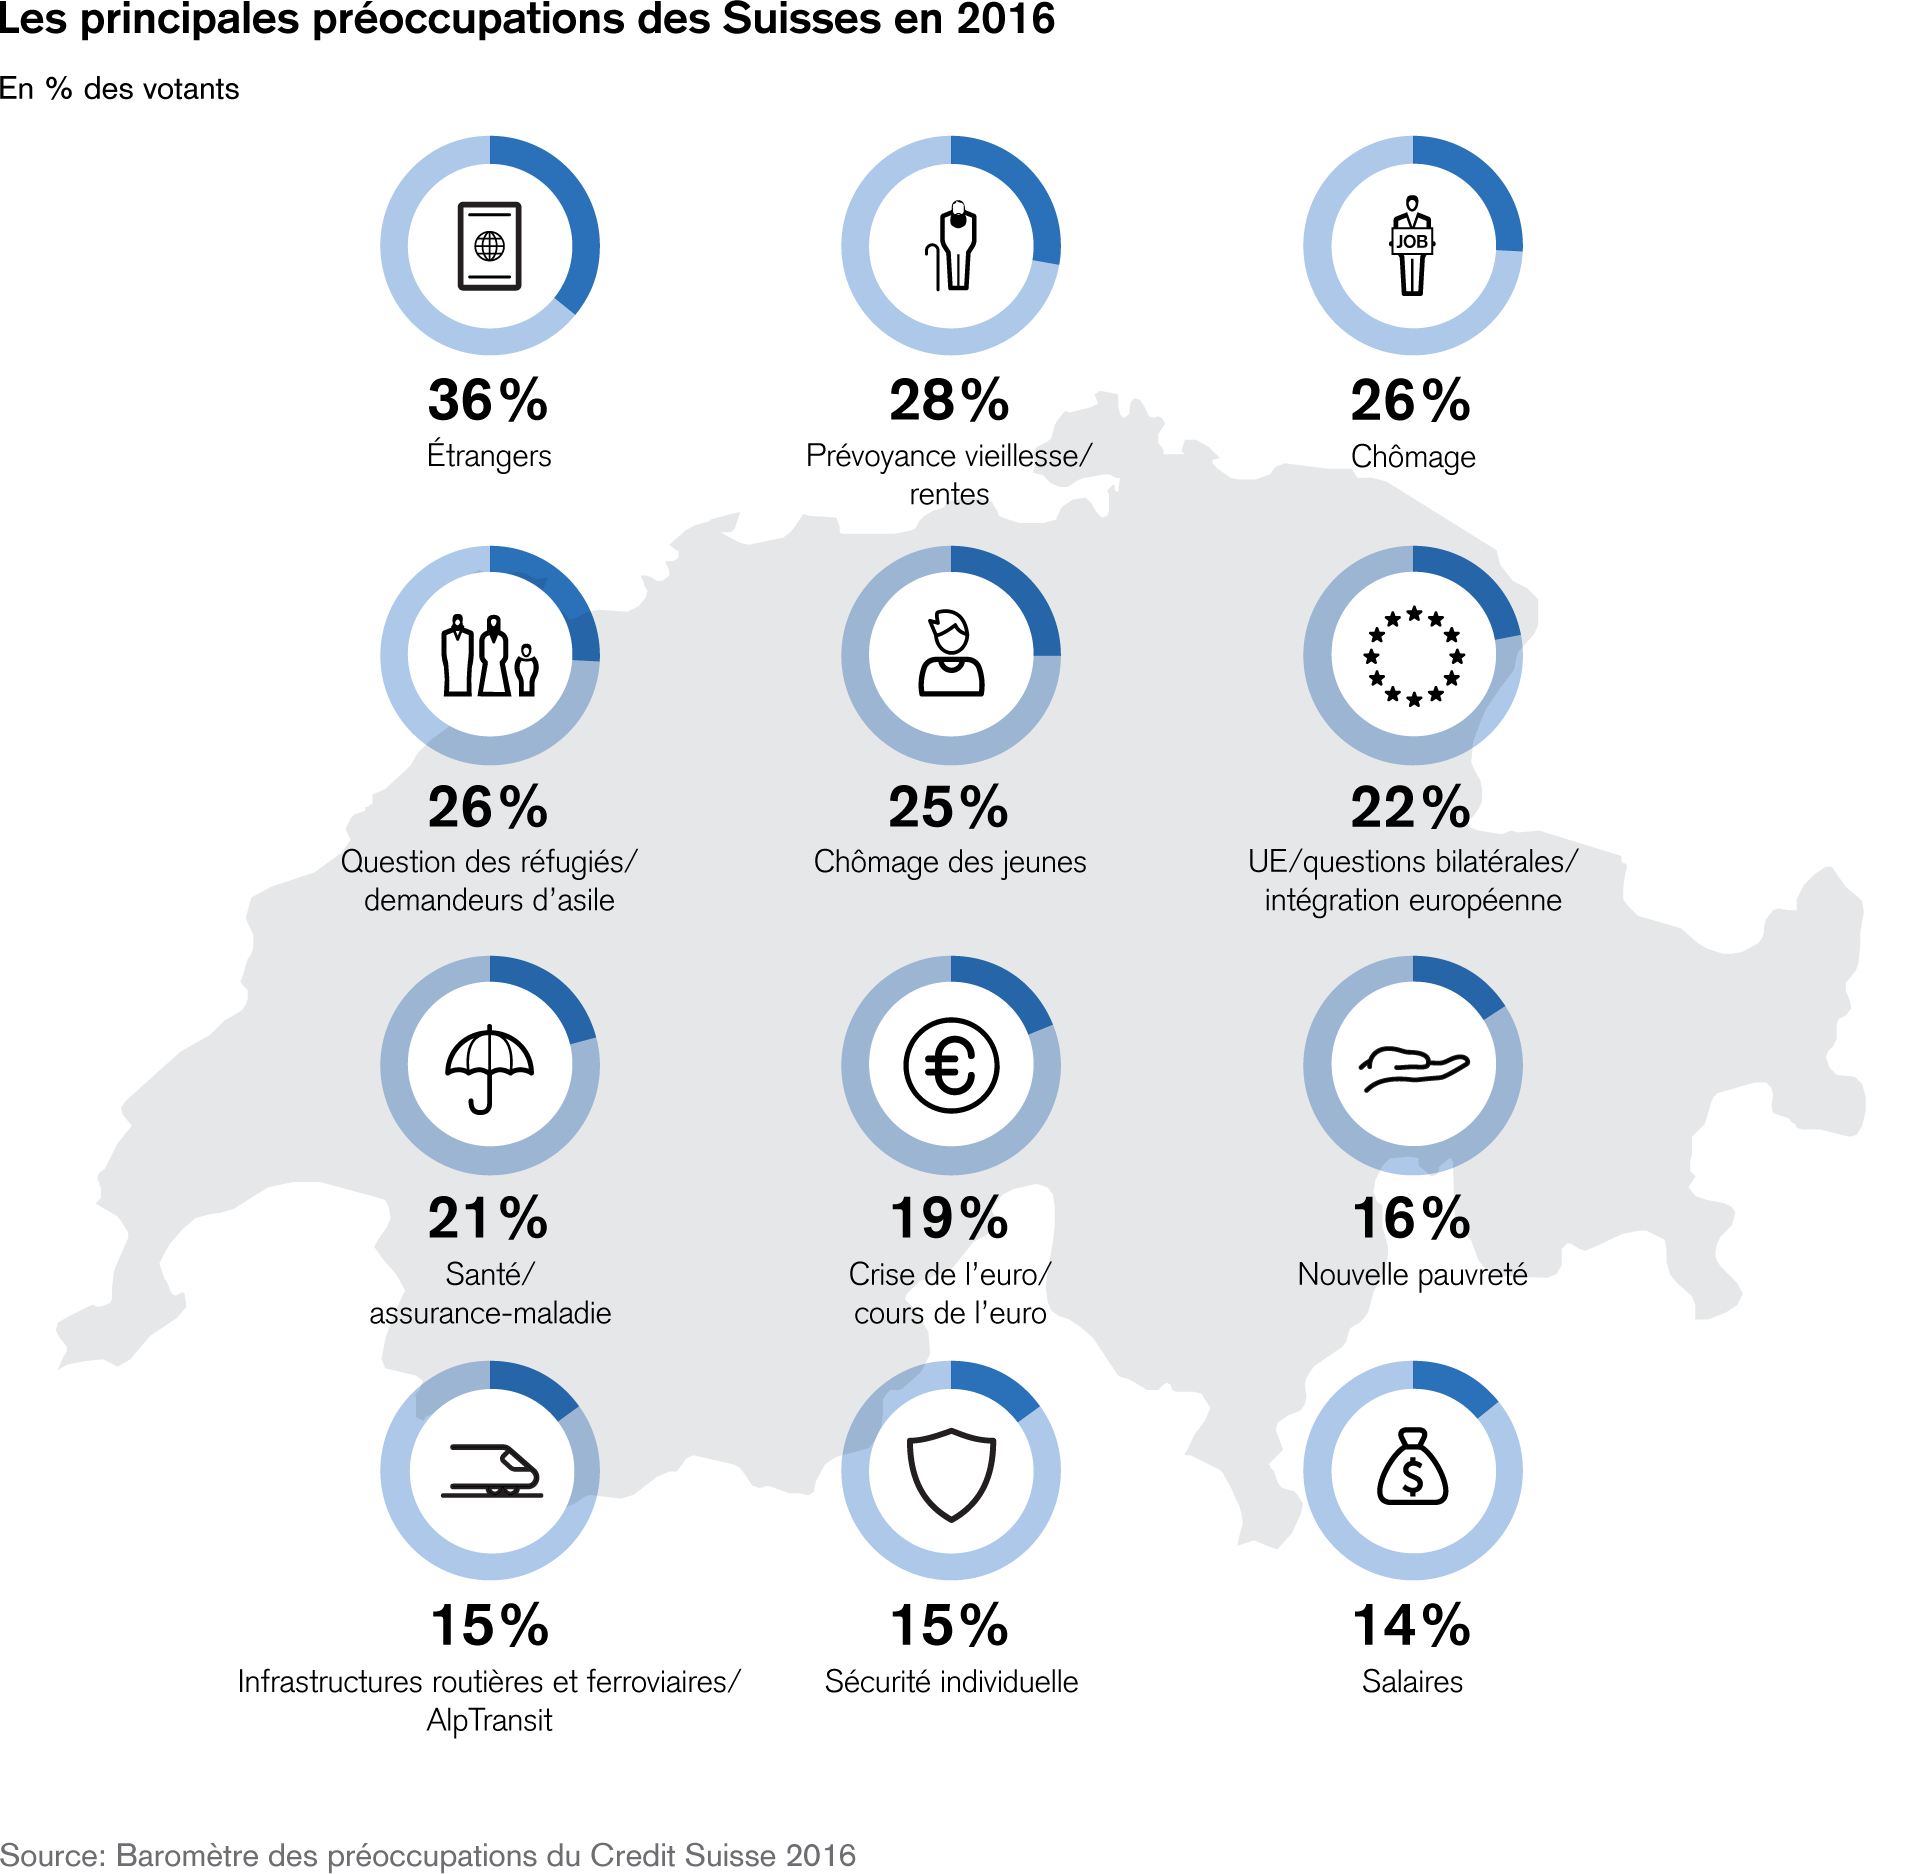 The Top Worries of the Swiss 2016